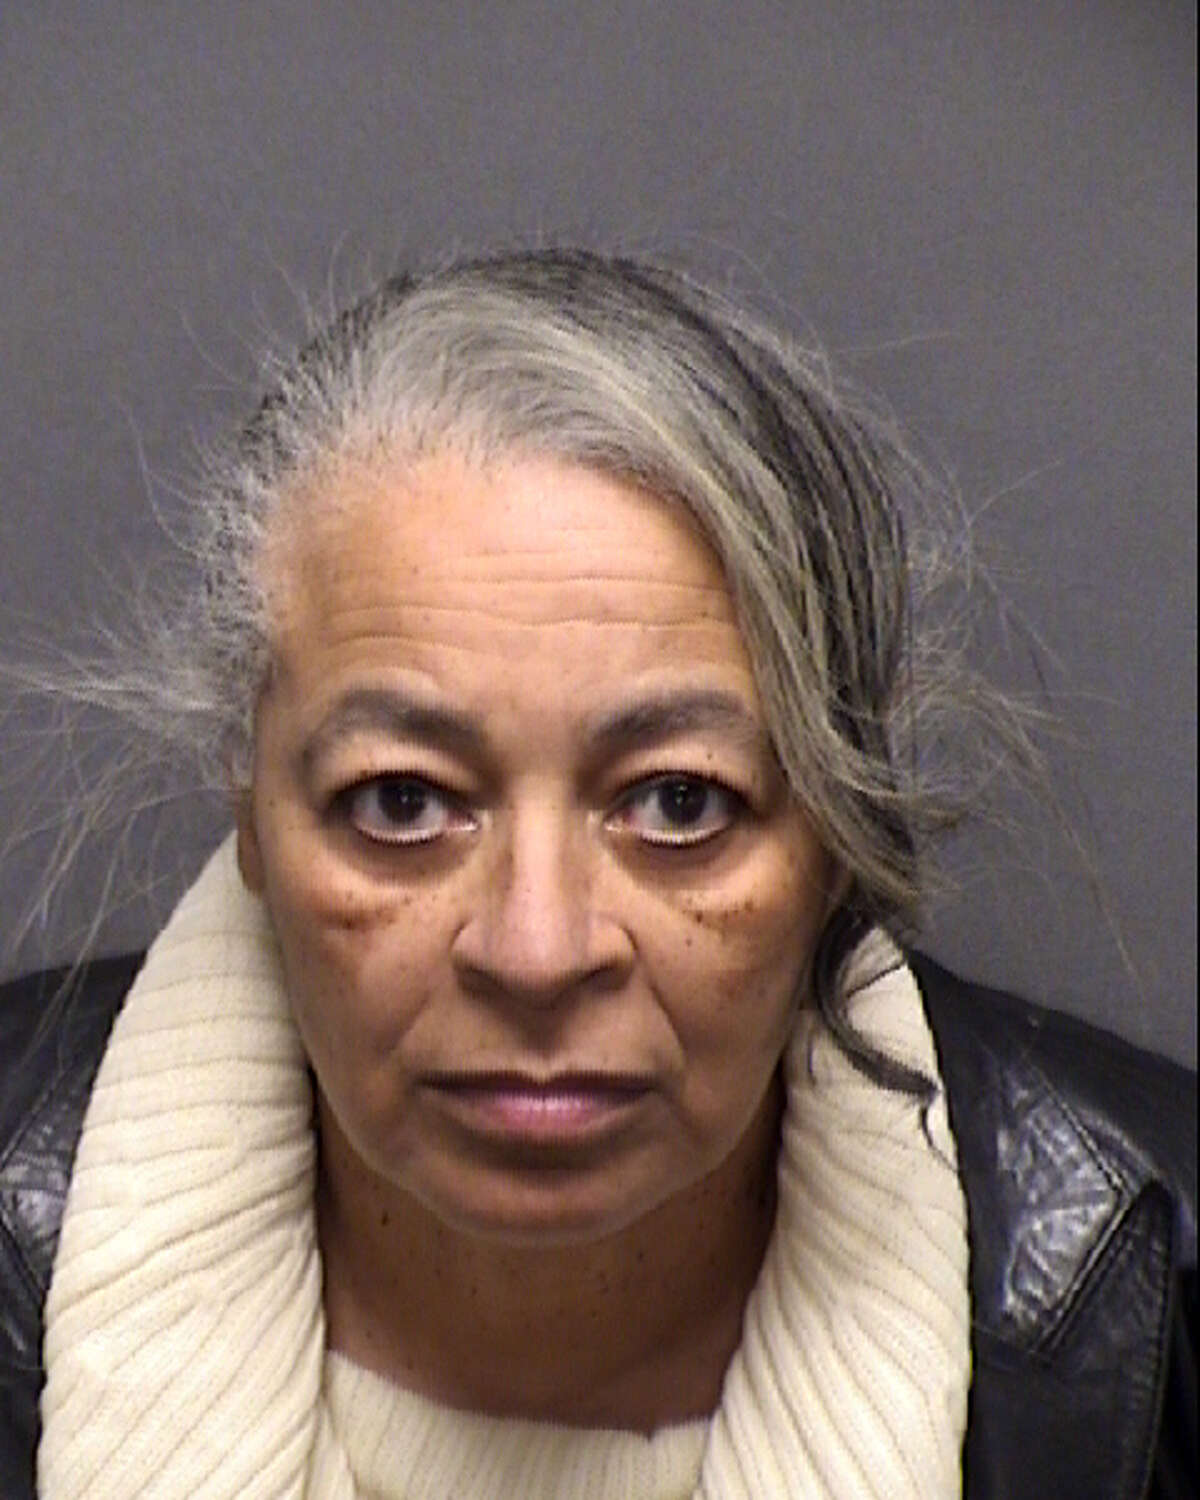 Linda Collier Mason faces charges of intoxication assault and driving while intoxicated, according to online jail records.